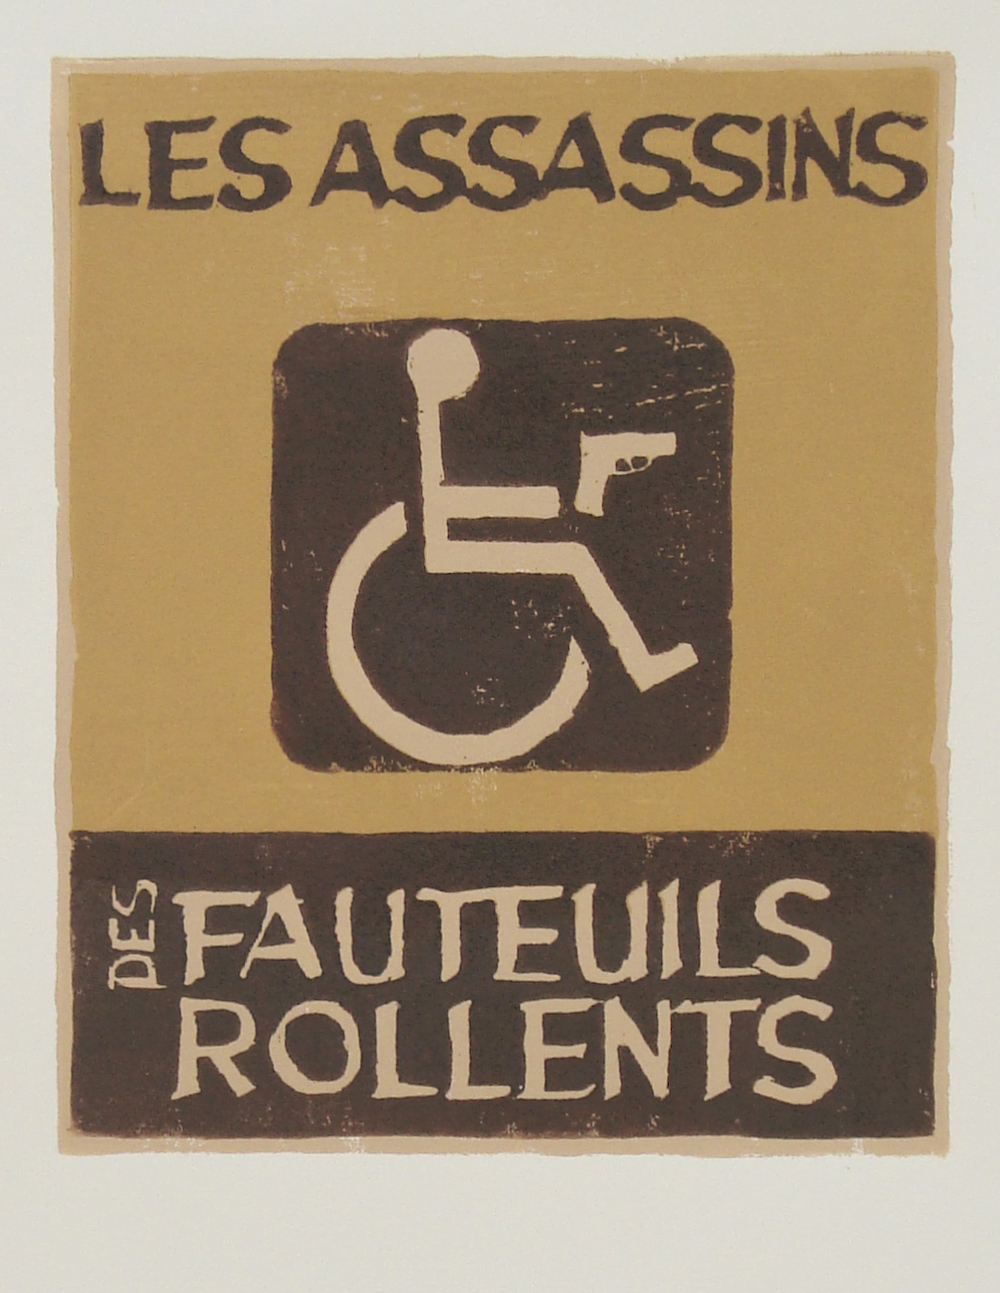 Les Assassins des Fauteuils Rollents   reductive woodblock print  edition of 11  8x10""